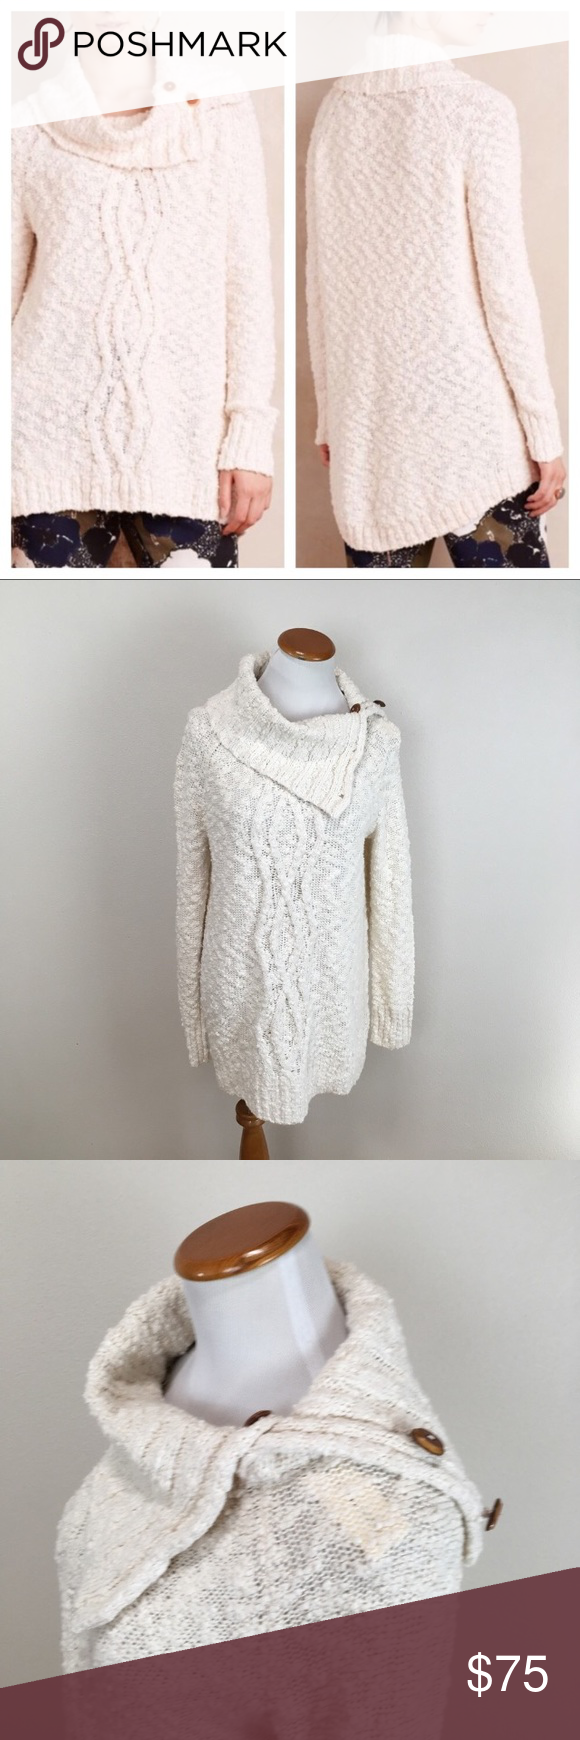 NWT Moth Anthro Cowl Neck Knit Sweater Medium NWT | Cowl neck ...